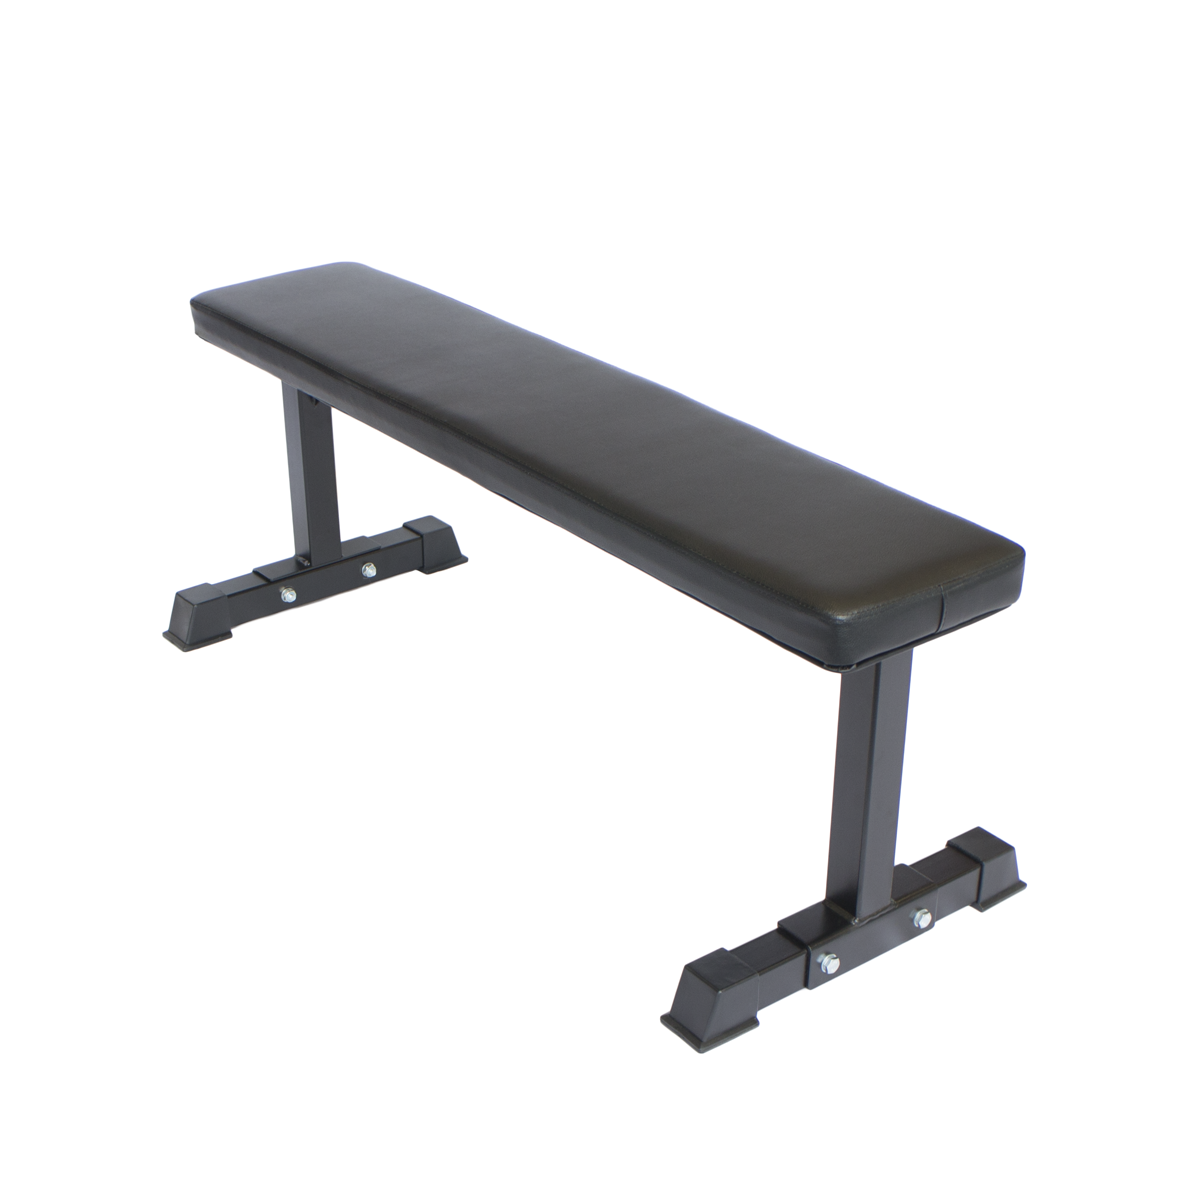 XB Flat Utility Bench - Heavy Duty